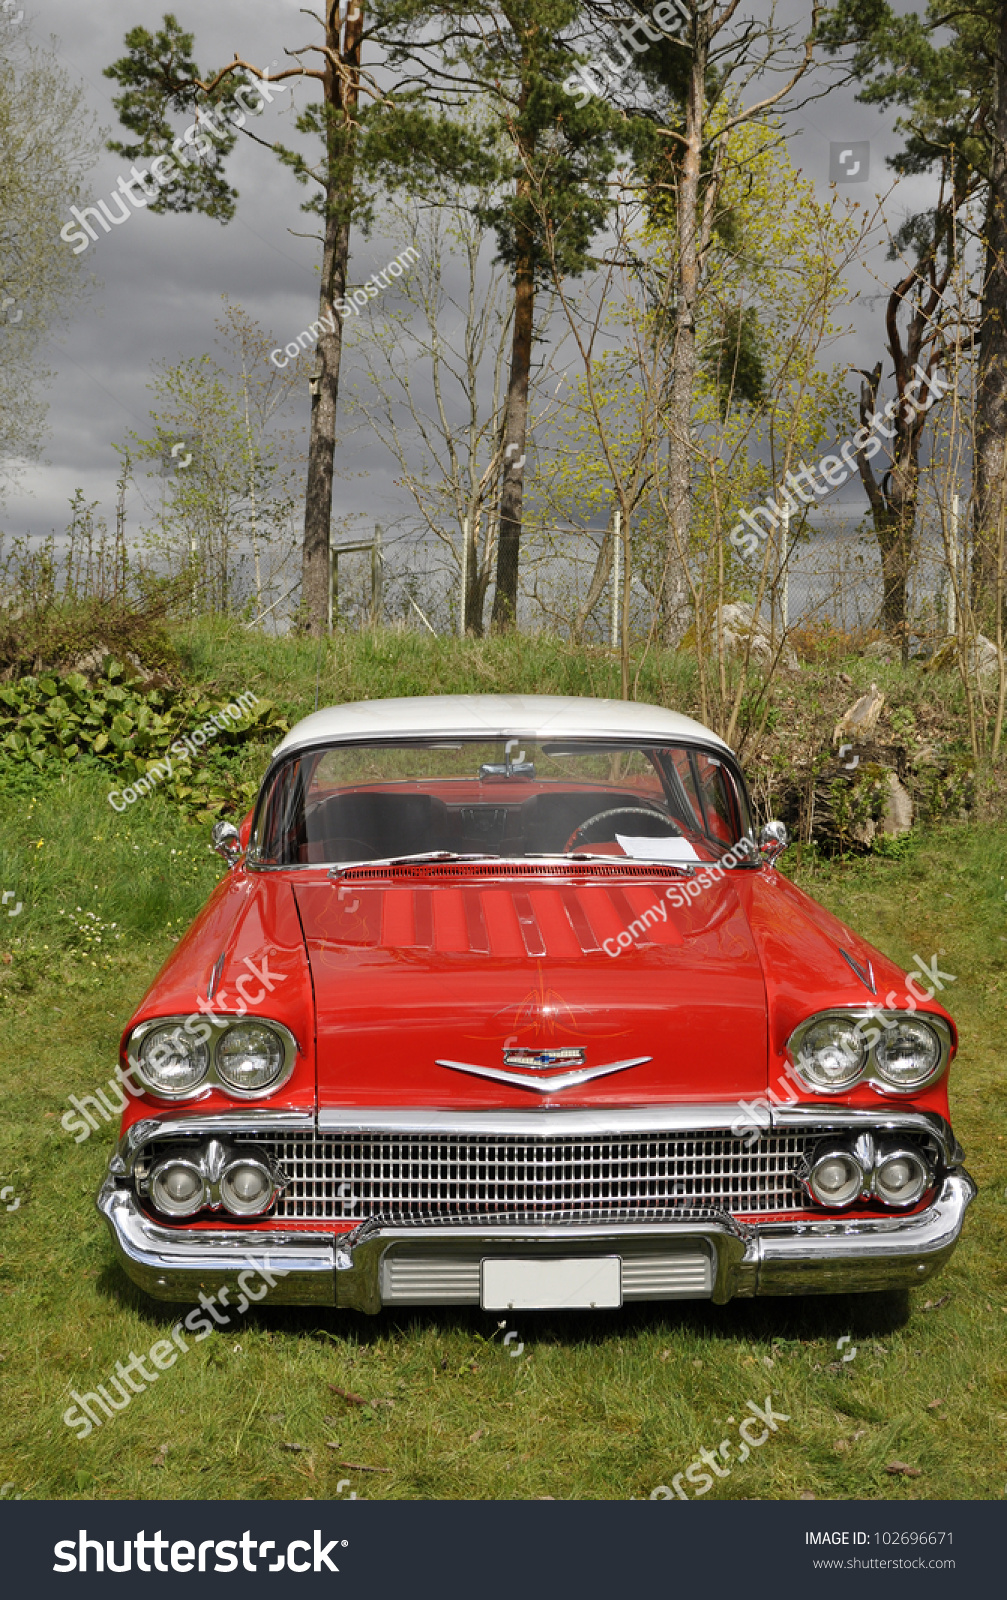 HEBY SWEDENMAY 12 Exhibit Old American Stock Photo (Royalty Free ...